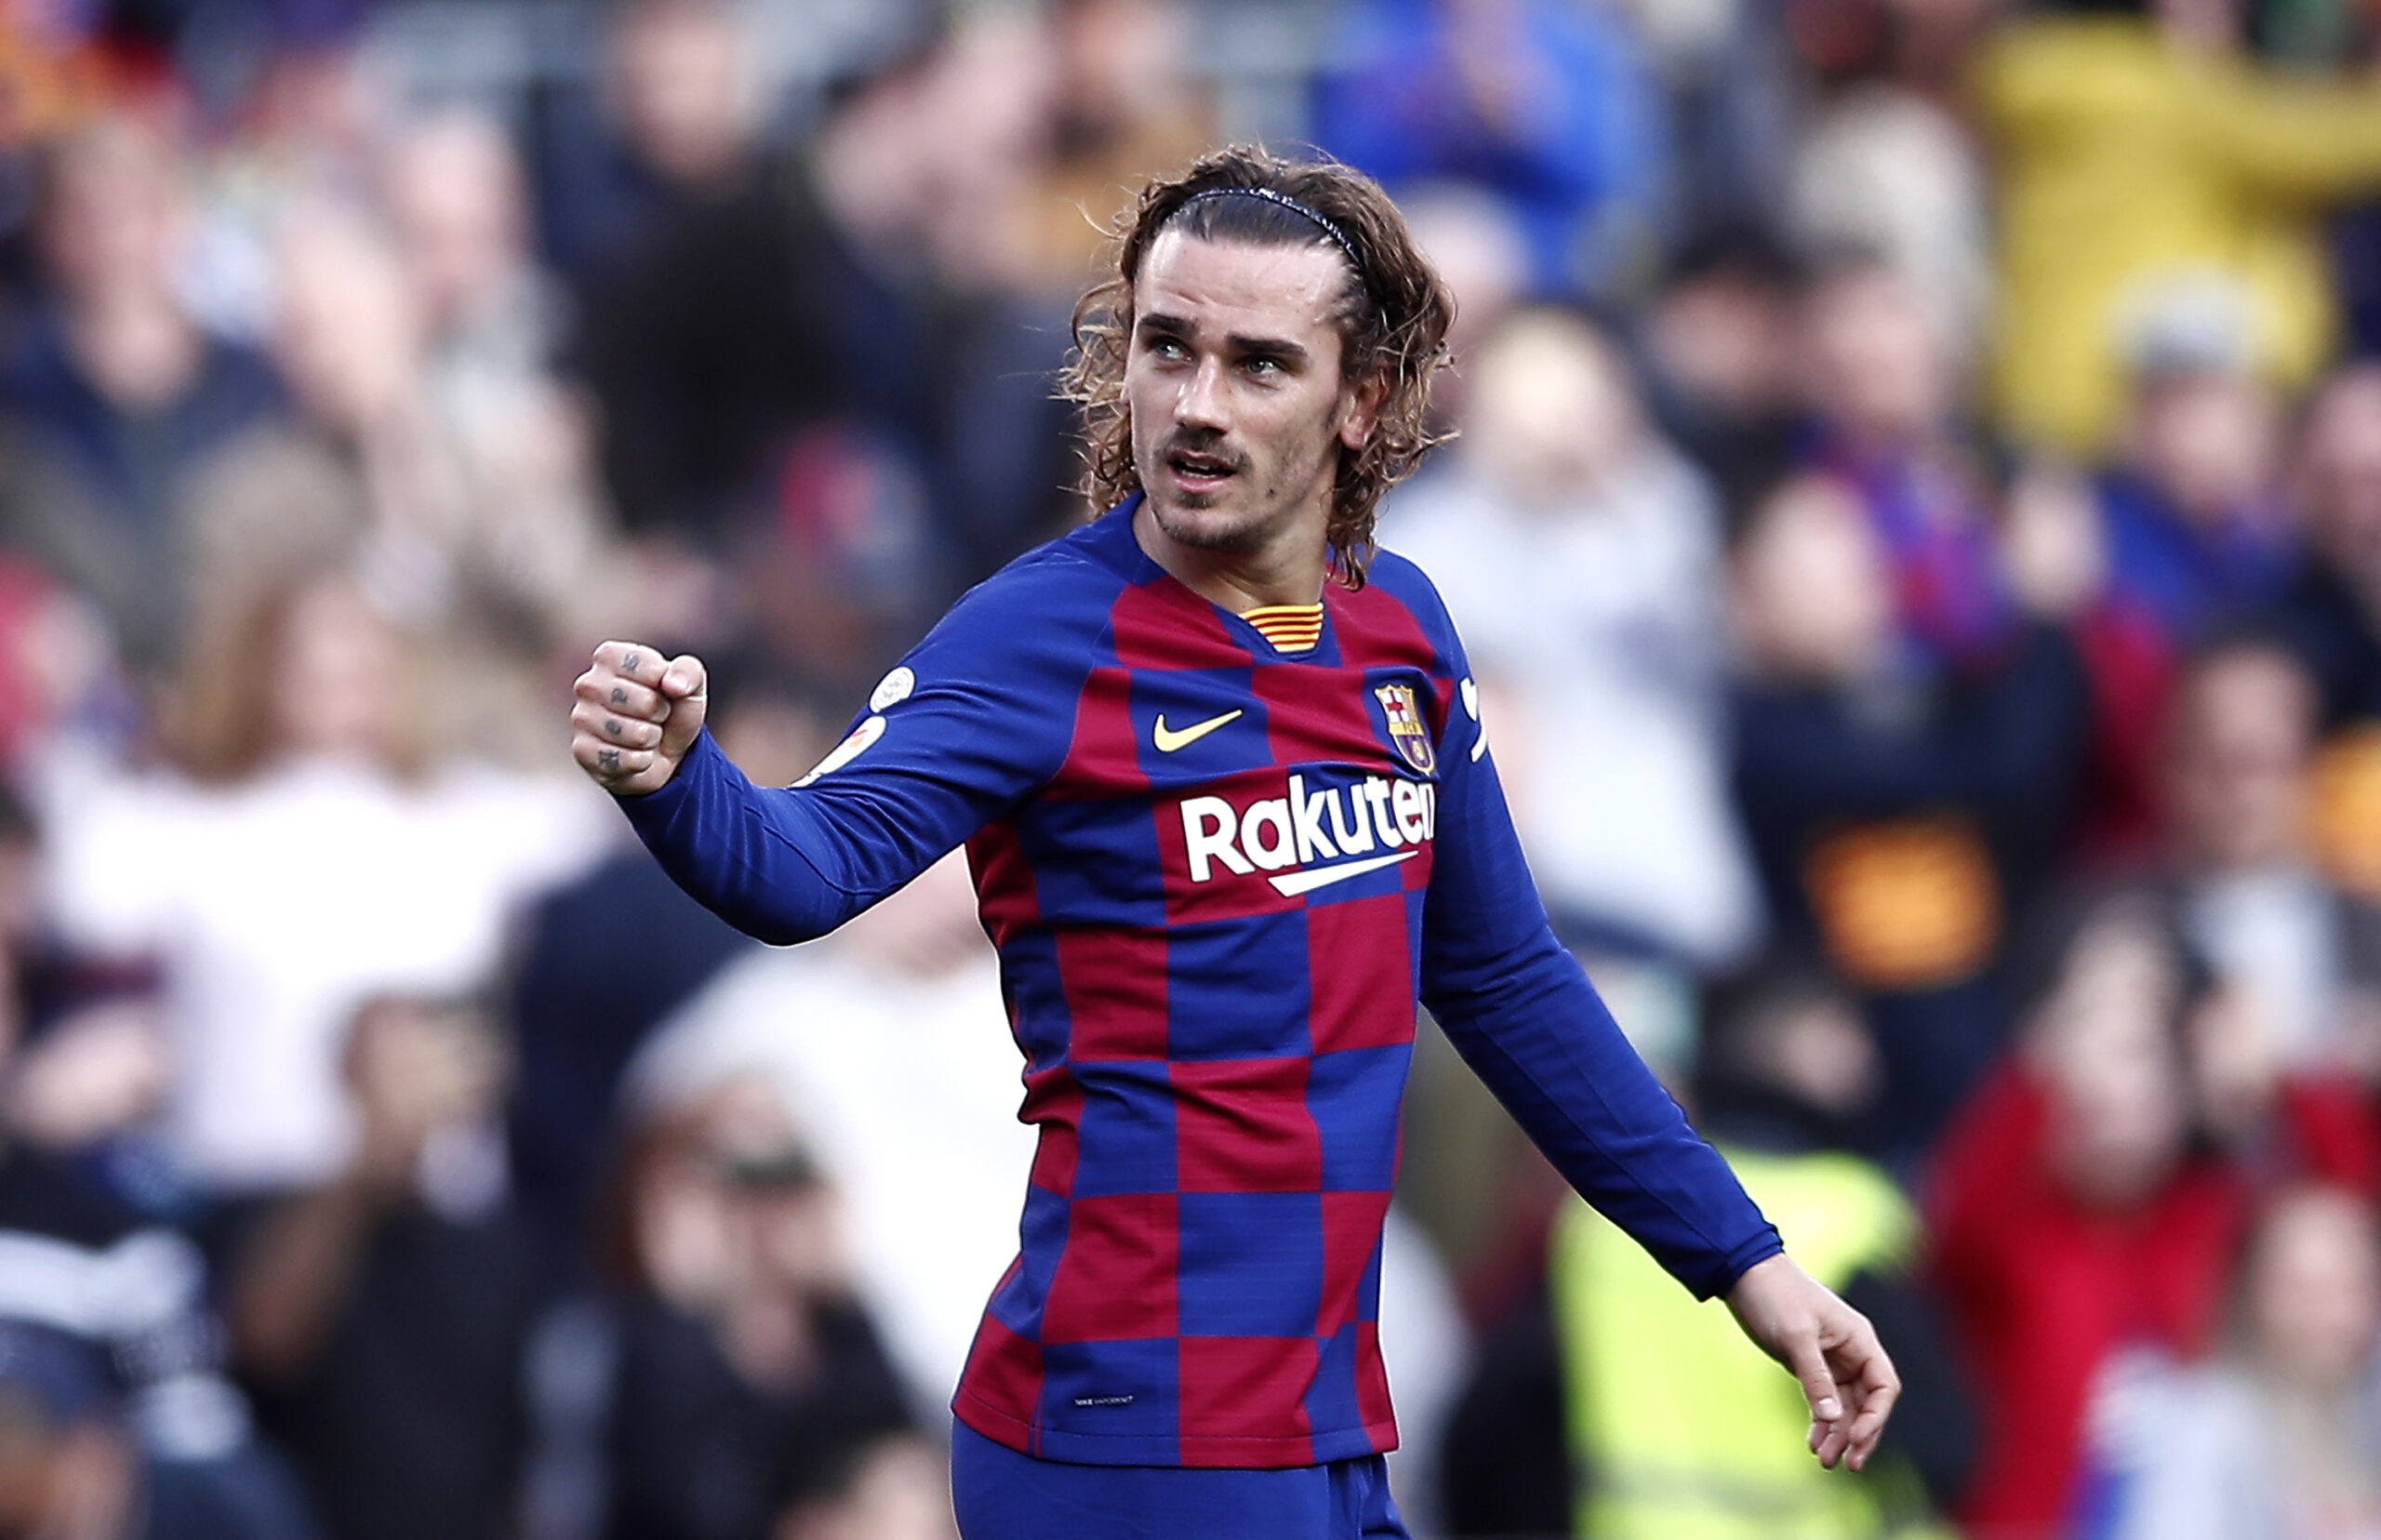 BARCELONA, SPAIN - FEBRUARY 15: Antoine Griezmann of FC Barcelona celebrates after scoring his team's first goal during the La Liga match between FC Barcelona and Getafe CF at Camp Nou on February 15, 2020 in Barcelona, Spain.